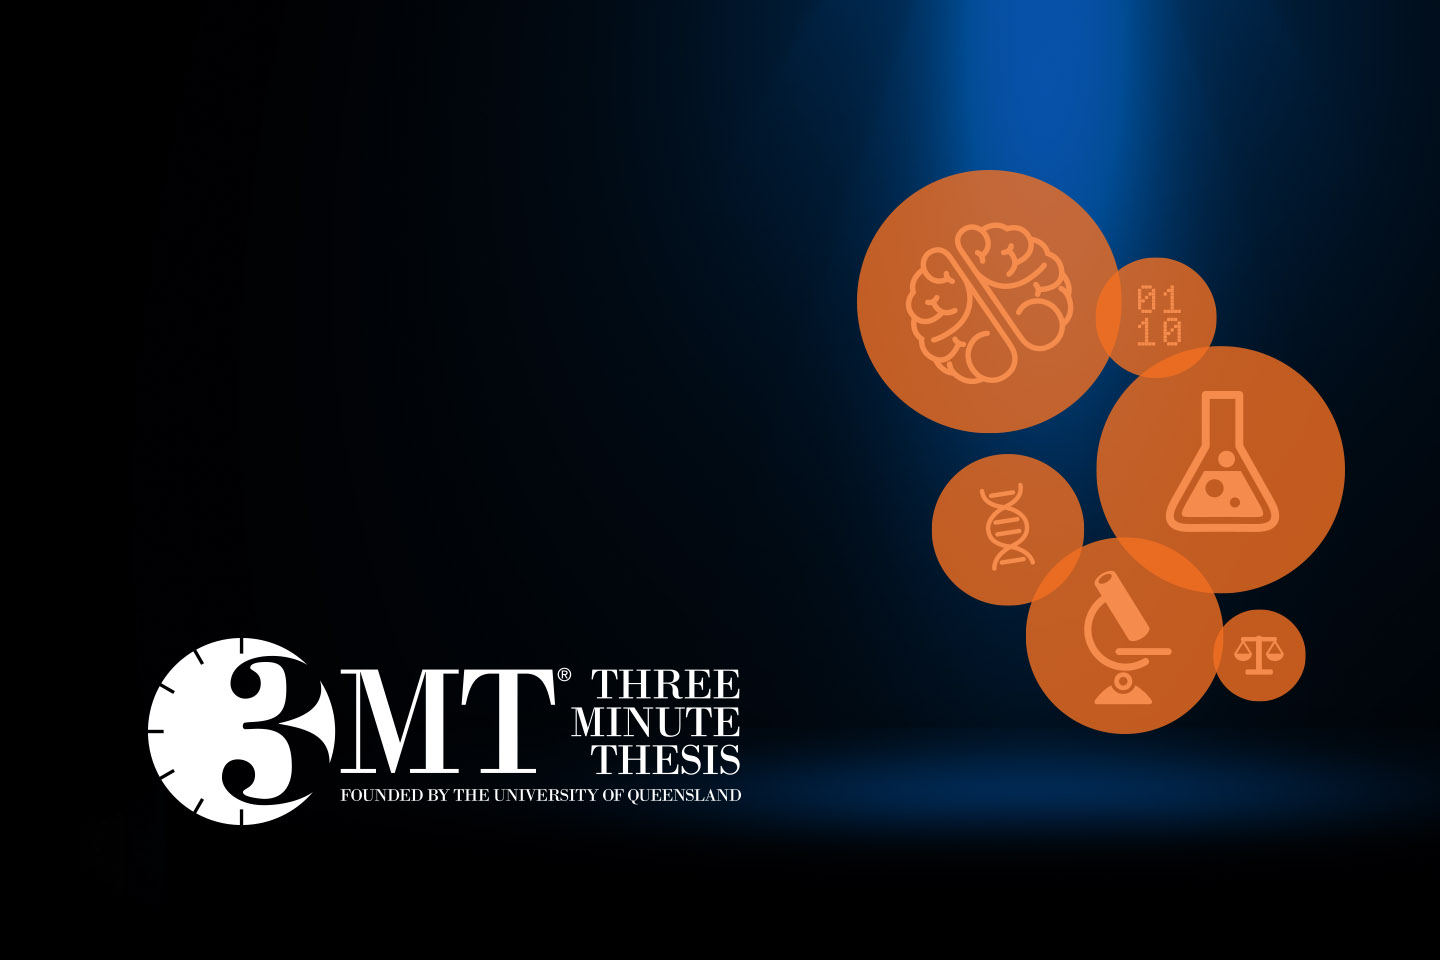 Three Minute Thesis logo with spotlight